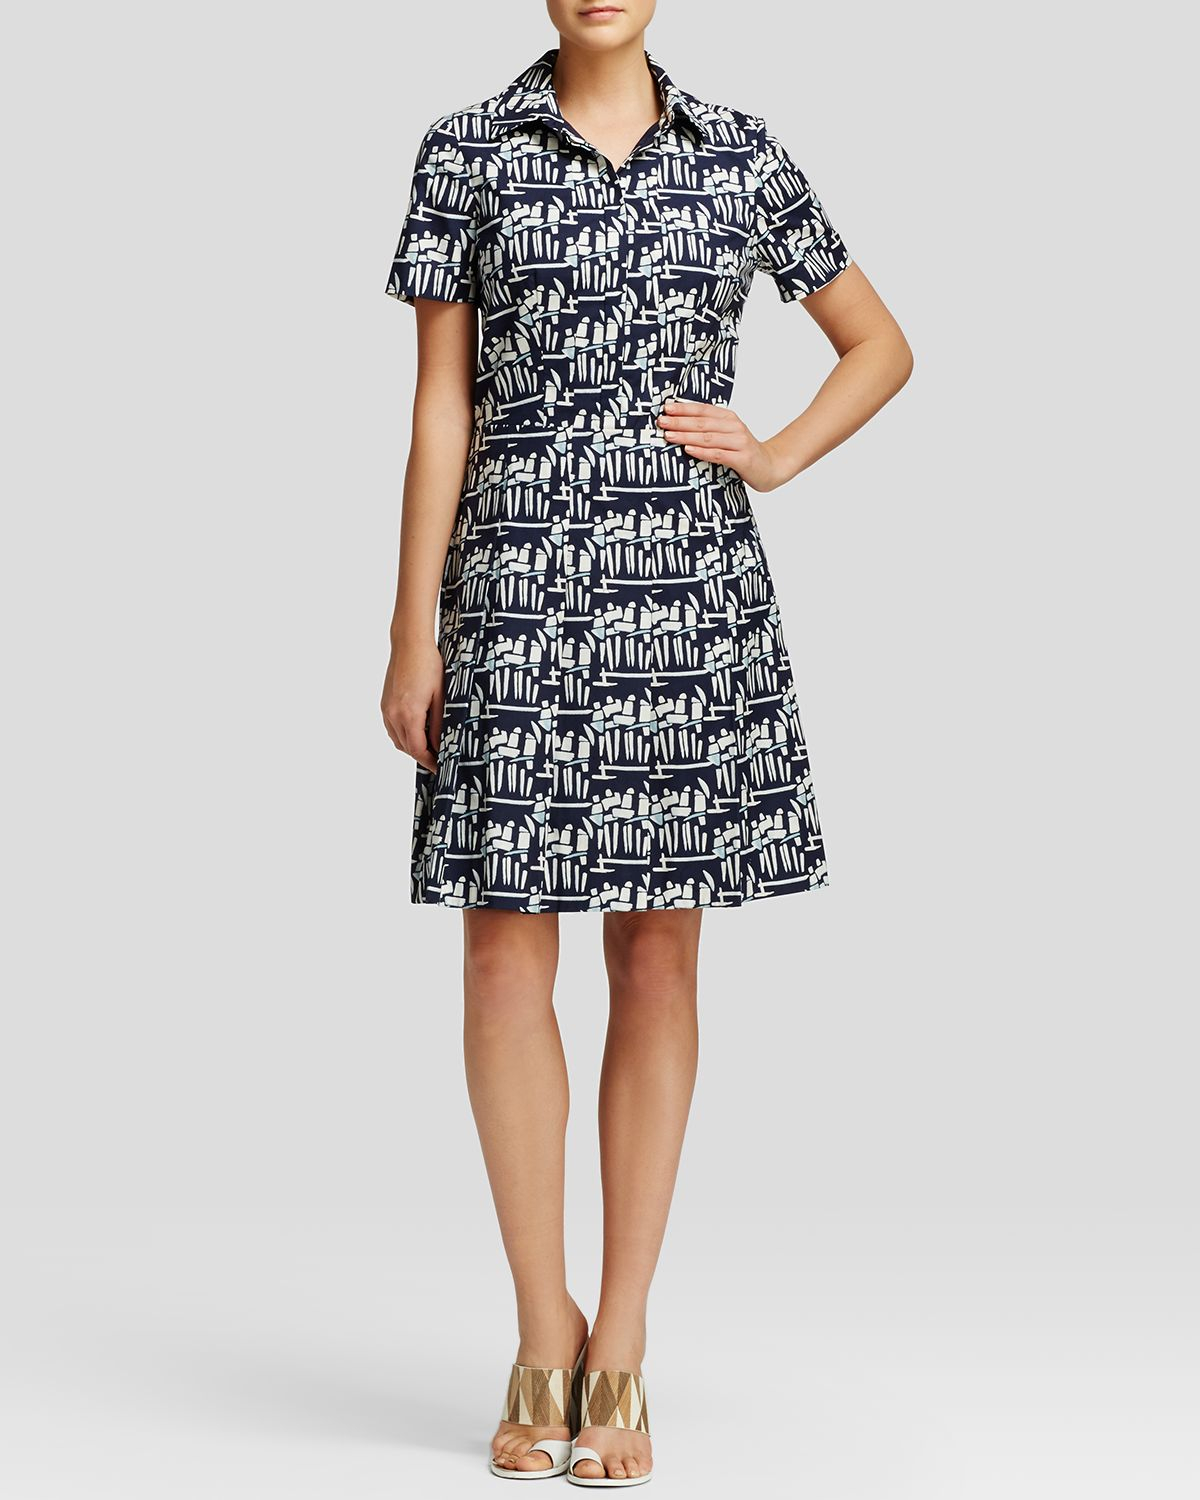 tory burch printed shirt dress in gray tory navy